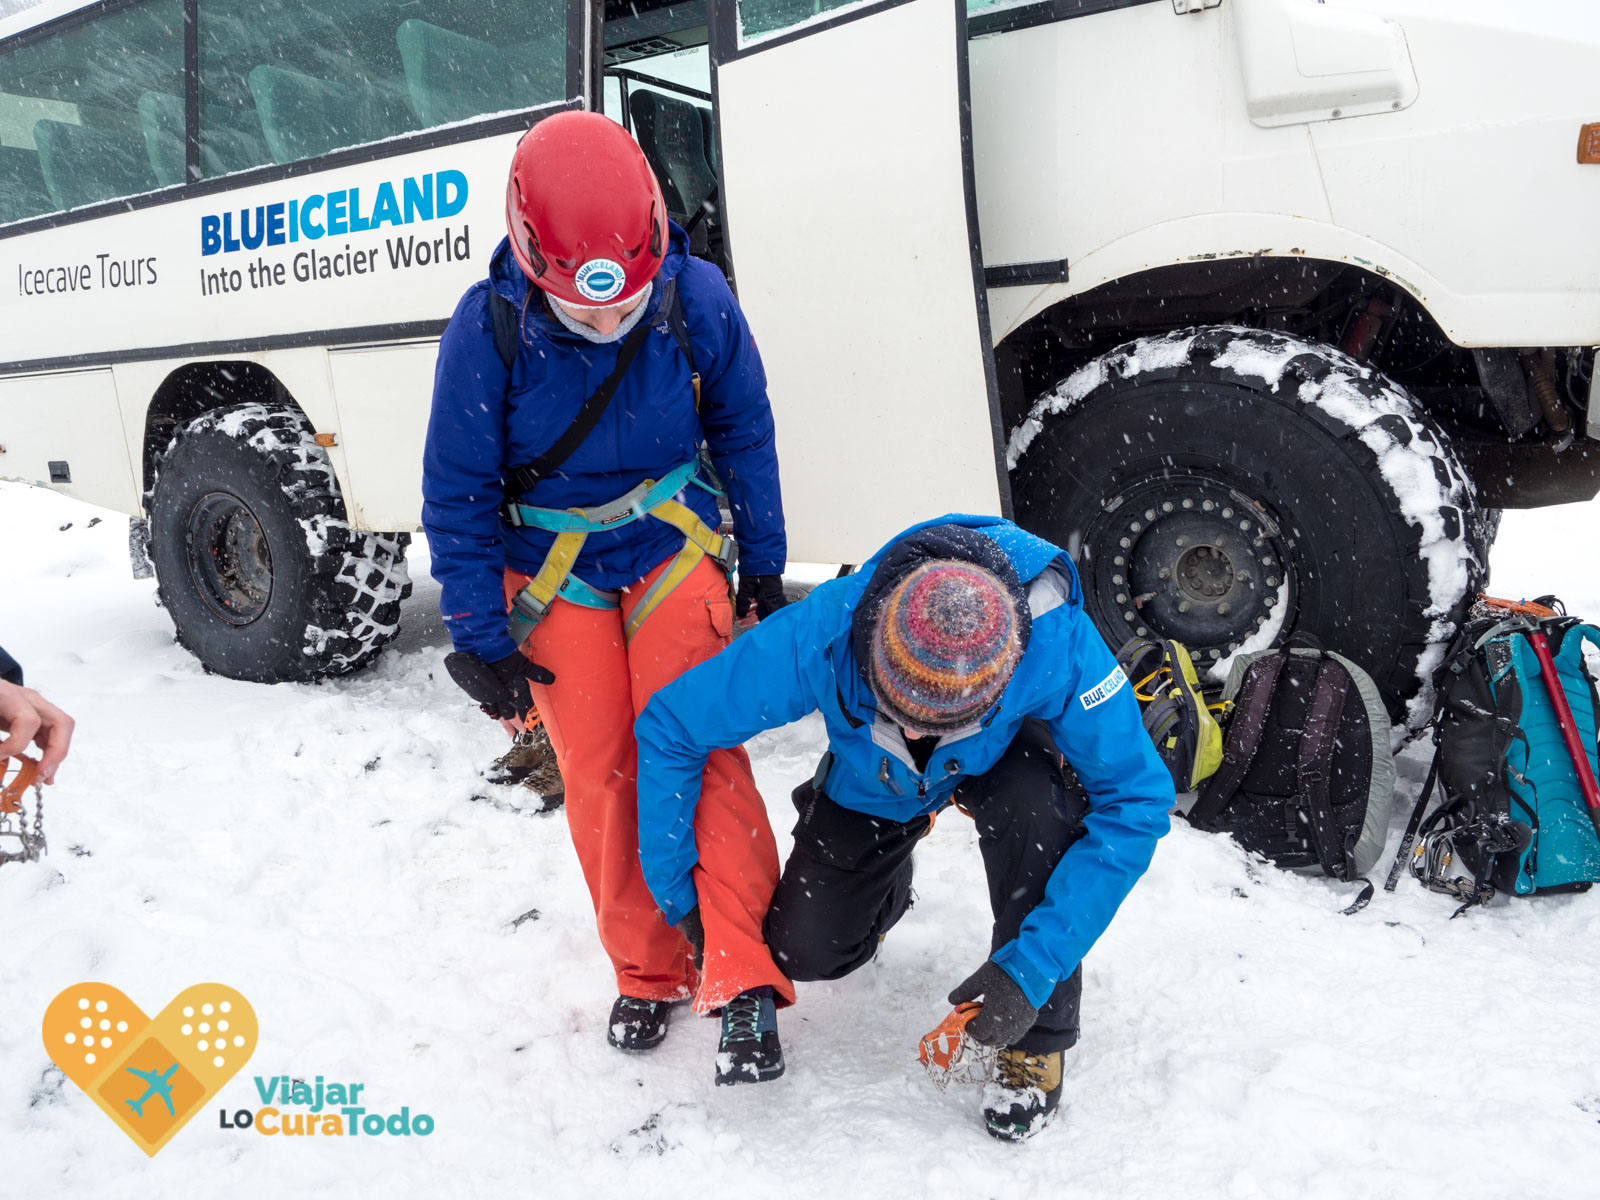 blue iceland tours